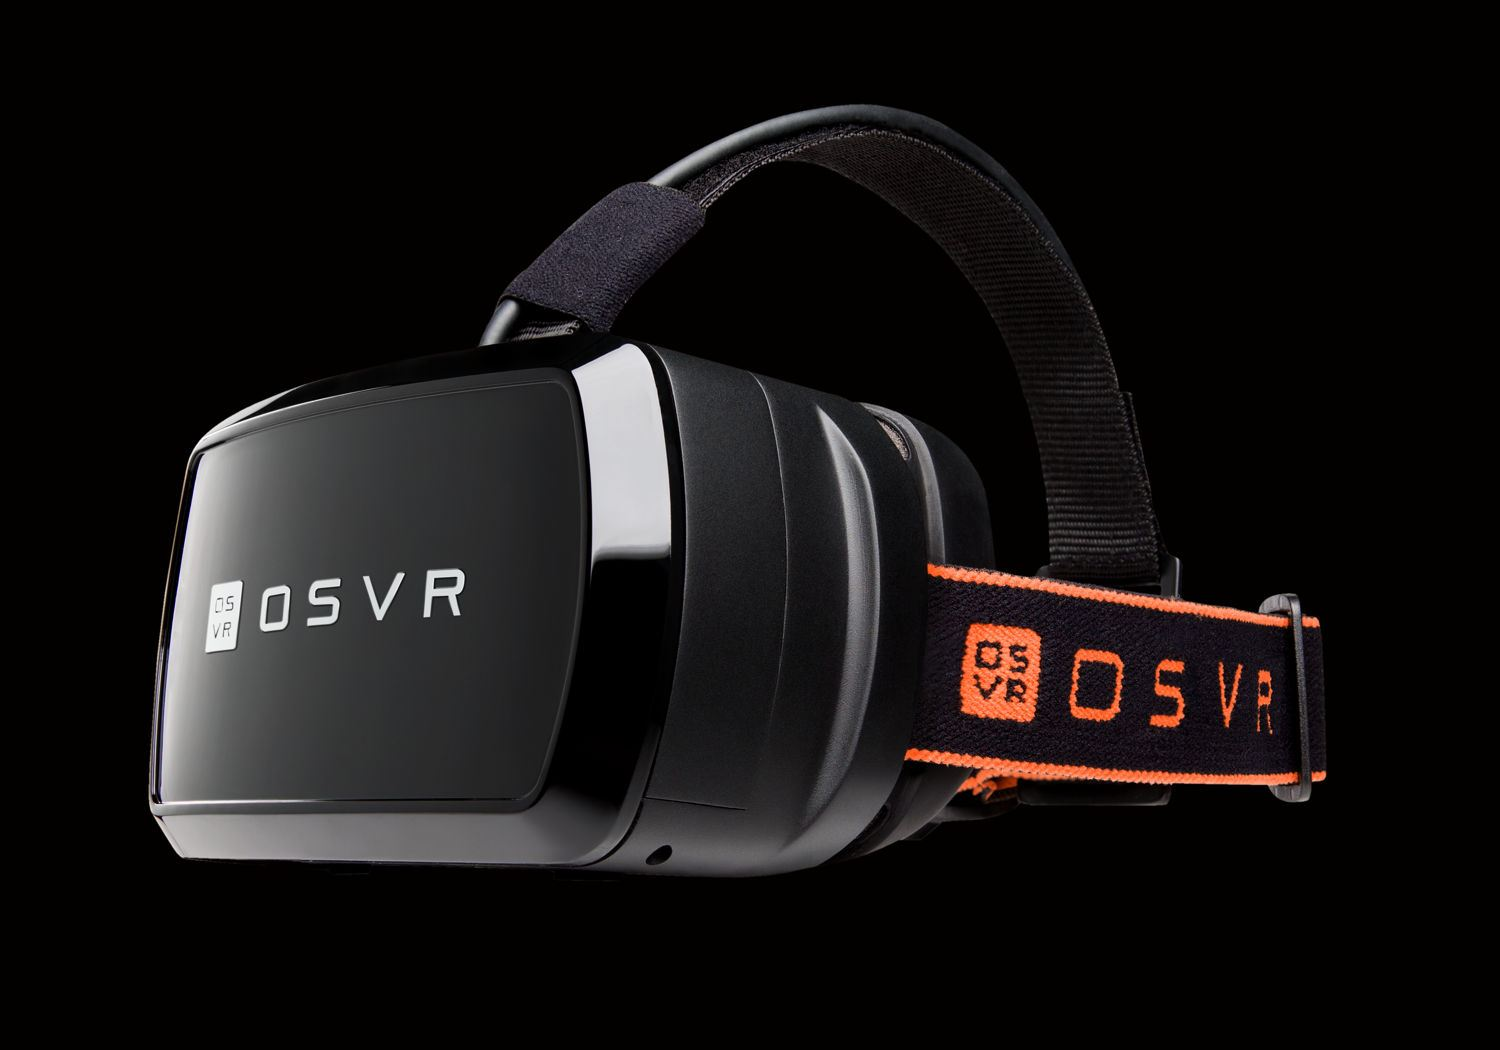 Razer announces new VR headset and Forge TV at CES 2015